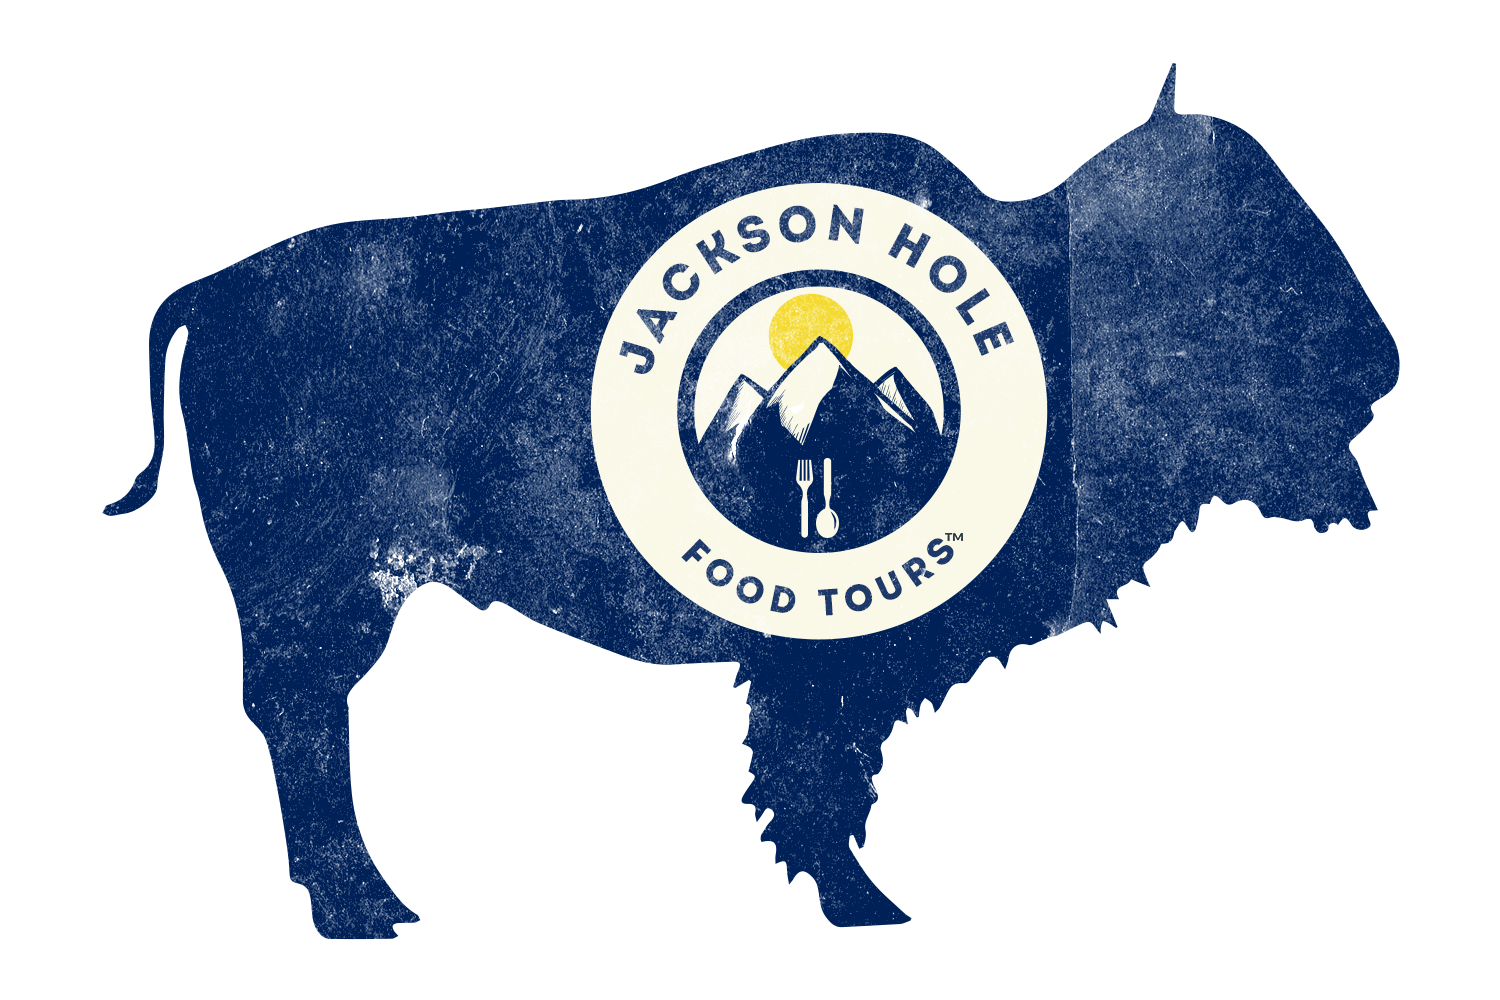 Jackson Hole Food Tours